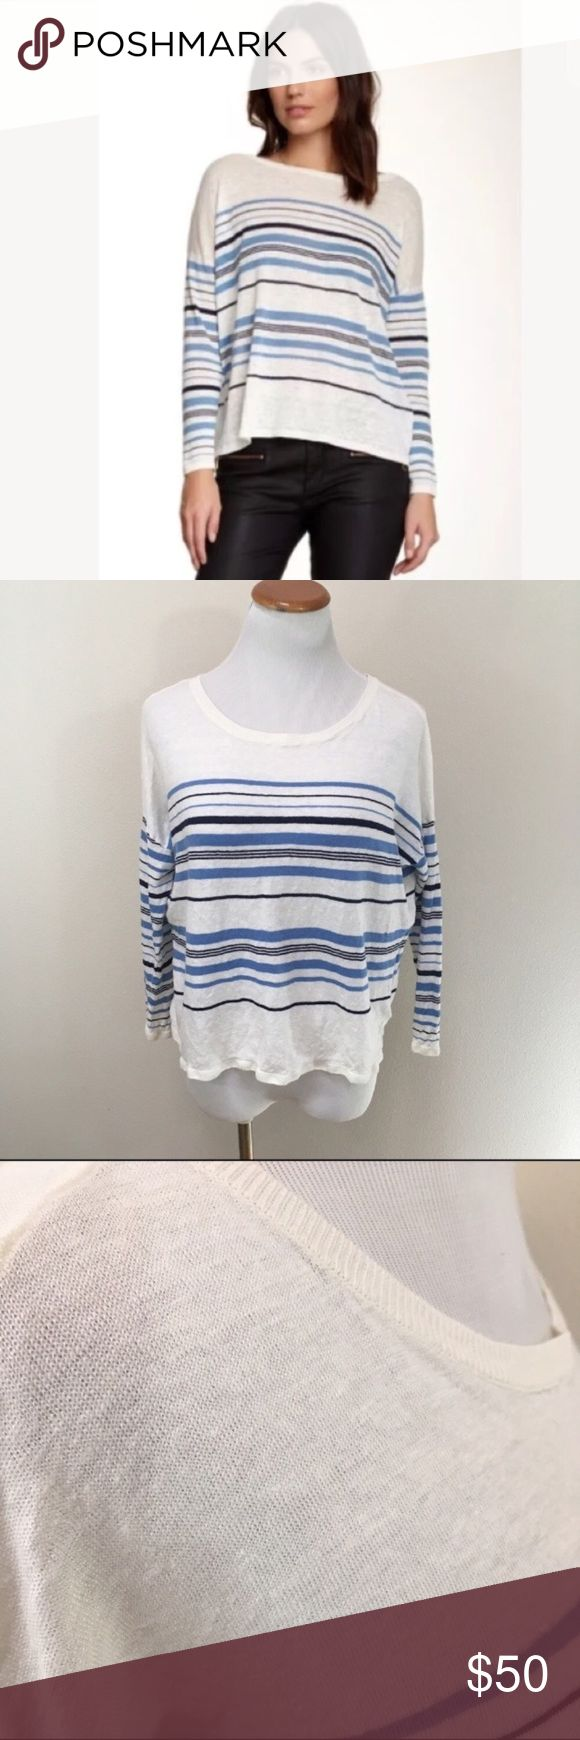 """Joie Maine White Linen Blue Striped Top Medium Joie Maine White Linen Blue Striped Nautical Long Sleeve Top Women's Medium. Excellent condition. Light weight. Clean and comes from smoke free home. Questions welcomed. Armpit to armpit: 22.5"""" across Length: 20"""" Joie Tops Blouses"""